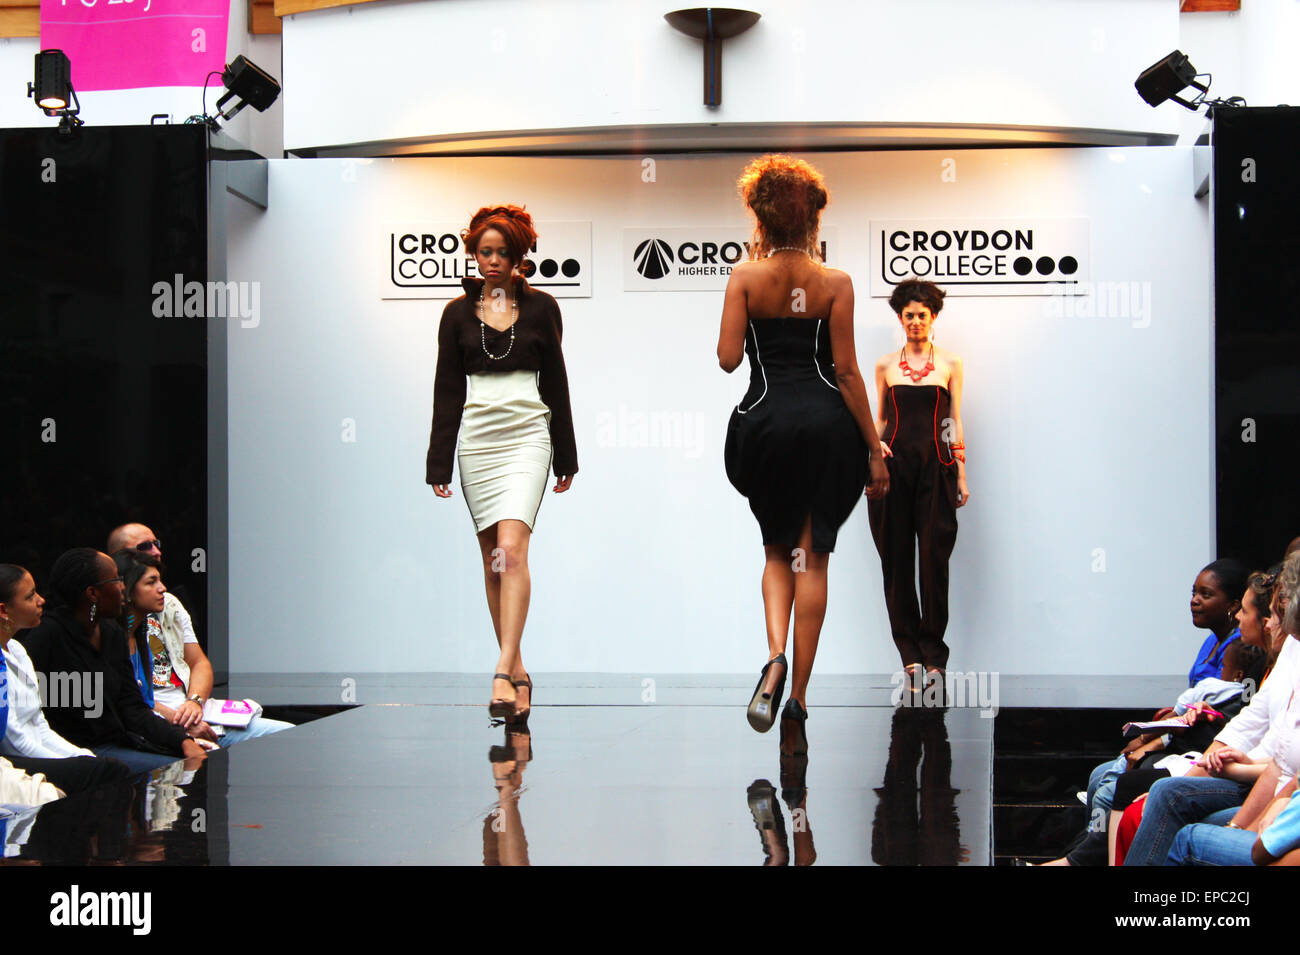 CROYDON, LONDON - JUNE 18 : Models in Fashion Festival on June 18, 2008 in Whitgift Shopping Centre, Croydon, England Stock Photo